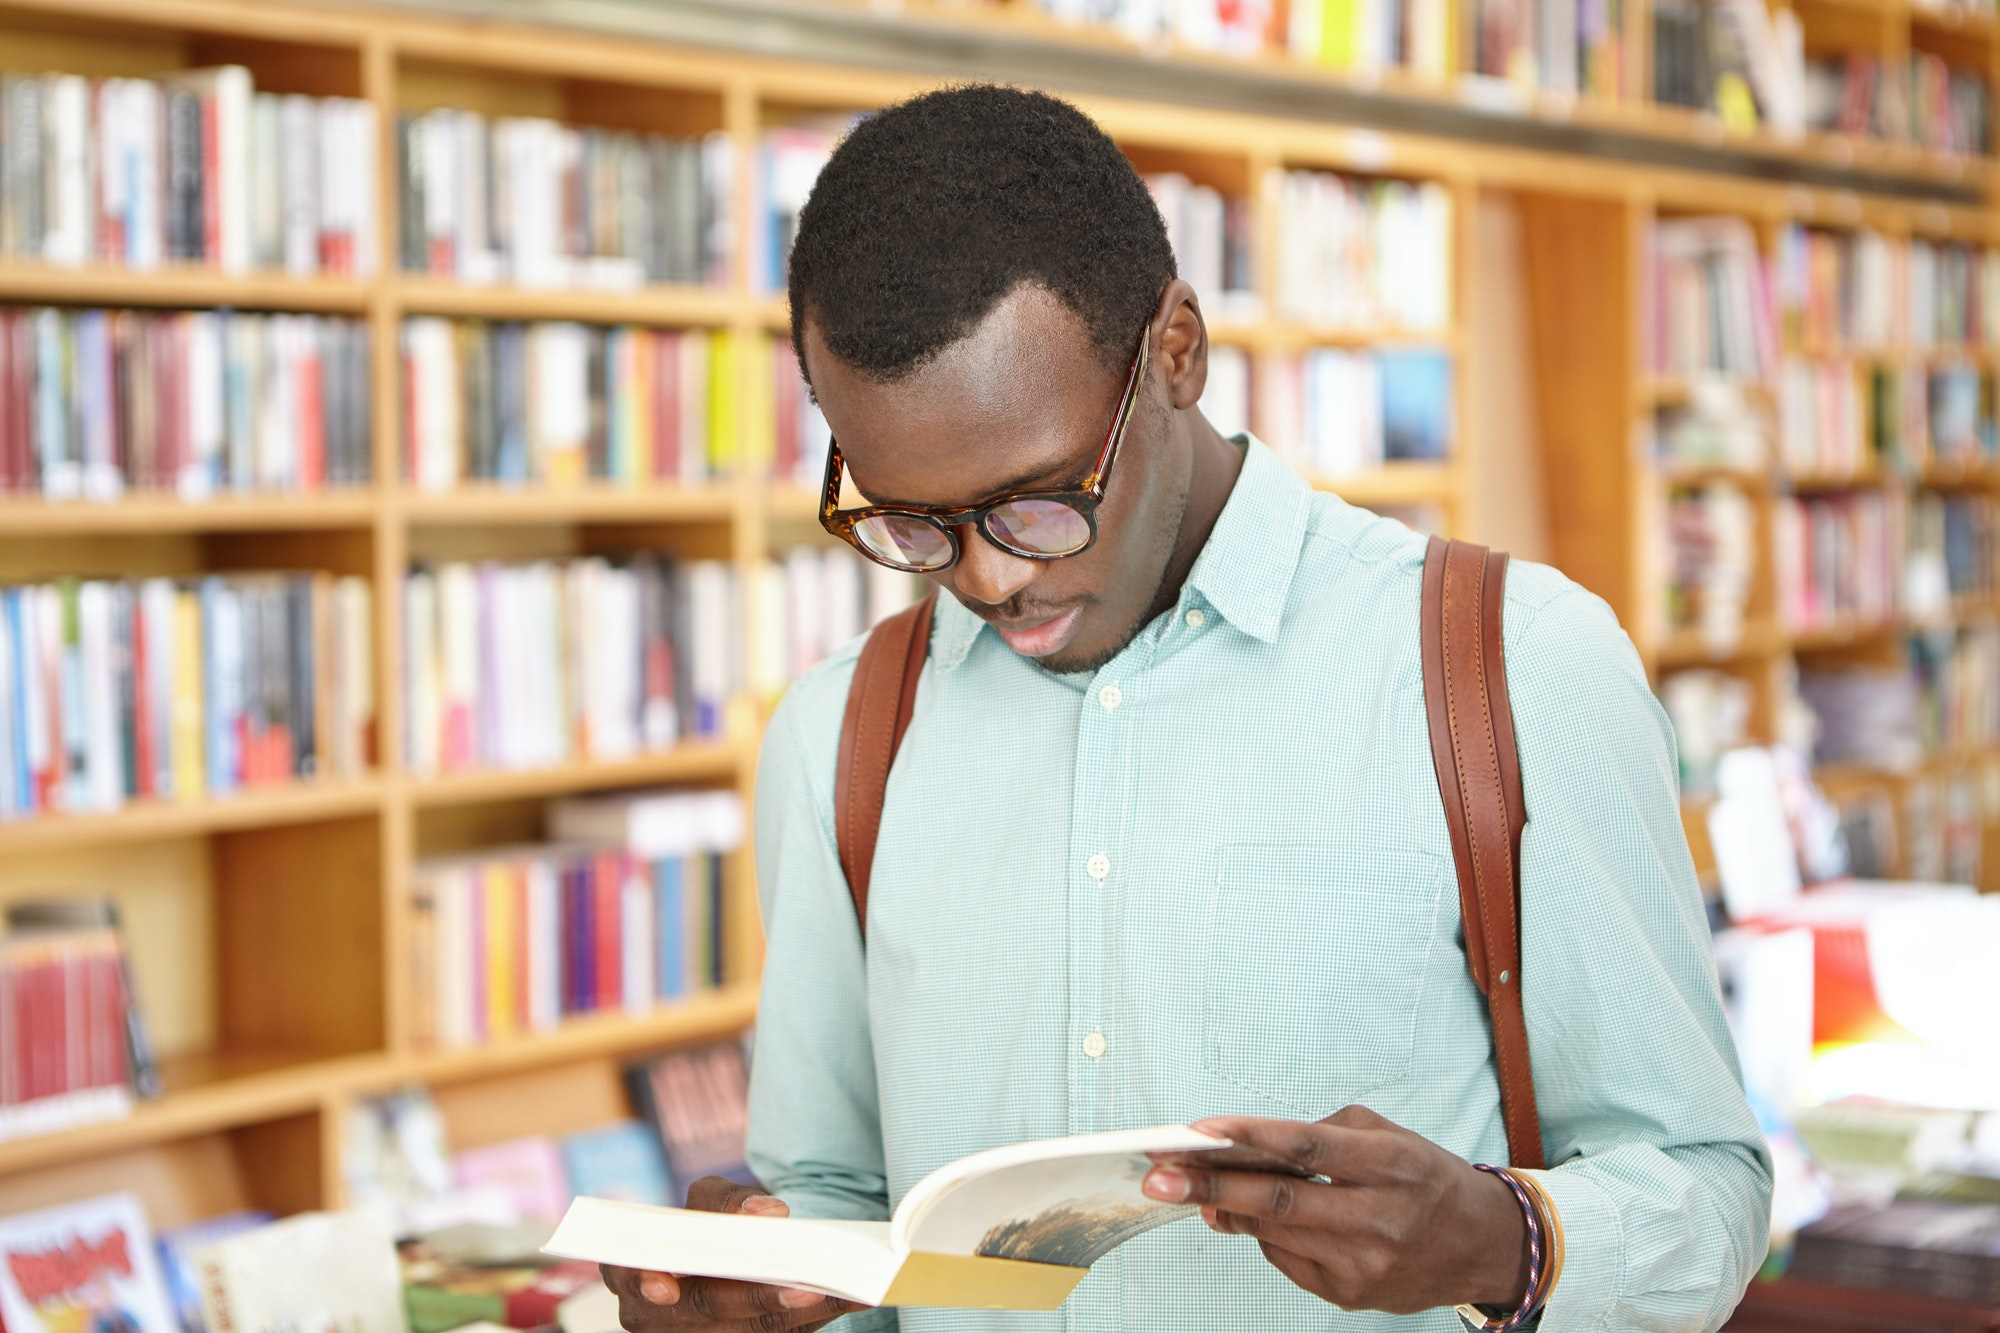 How to get reviews on Amazon: young man reading a book in a bookstore